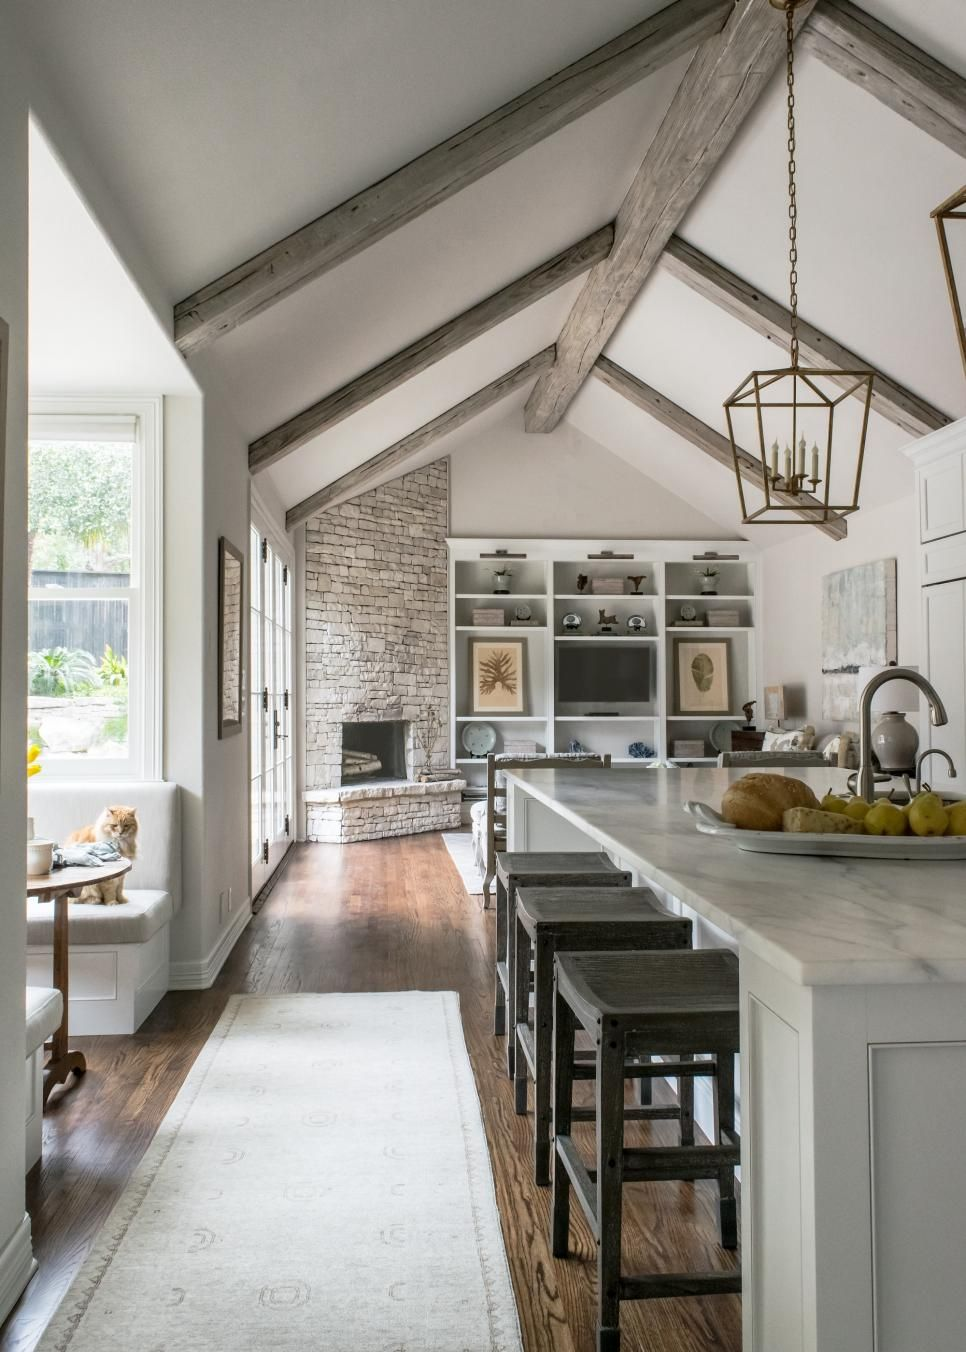 With Vaulted Ceilings Marble Surfaces And Crisp White Cabinetry This Contemporary Kitchen Remodeled Vaulted Ceiling Kitchen Contemporary Kitchen Remodel Home #vaulted #ceiling #wood #beams #living #room